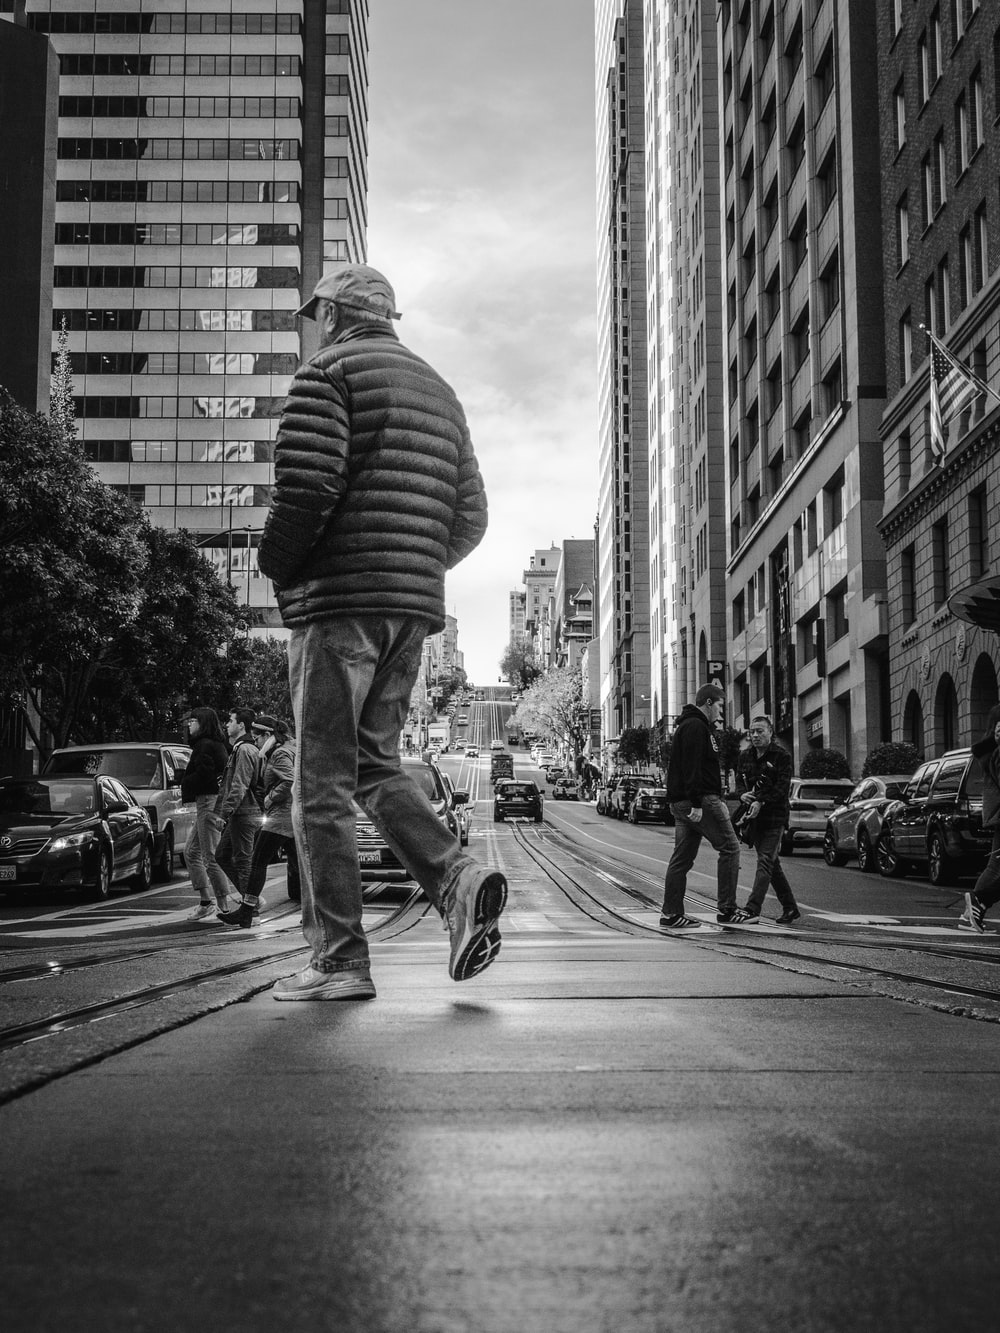 grayscale photo of man in striped shirt and denim jeans walking on street